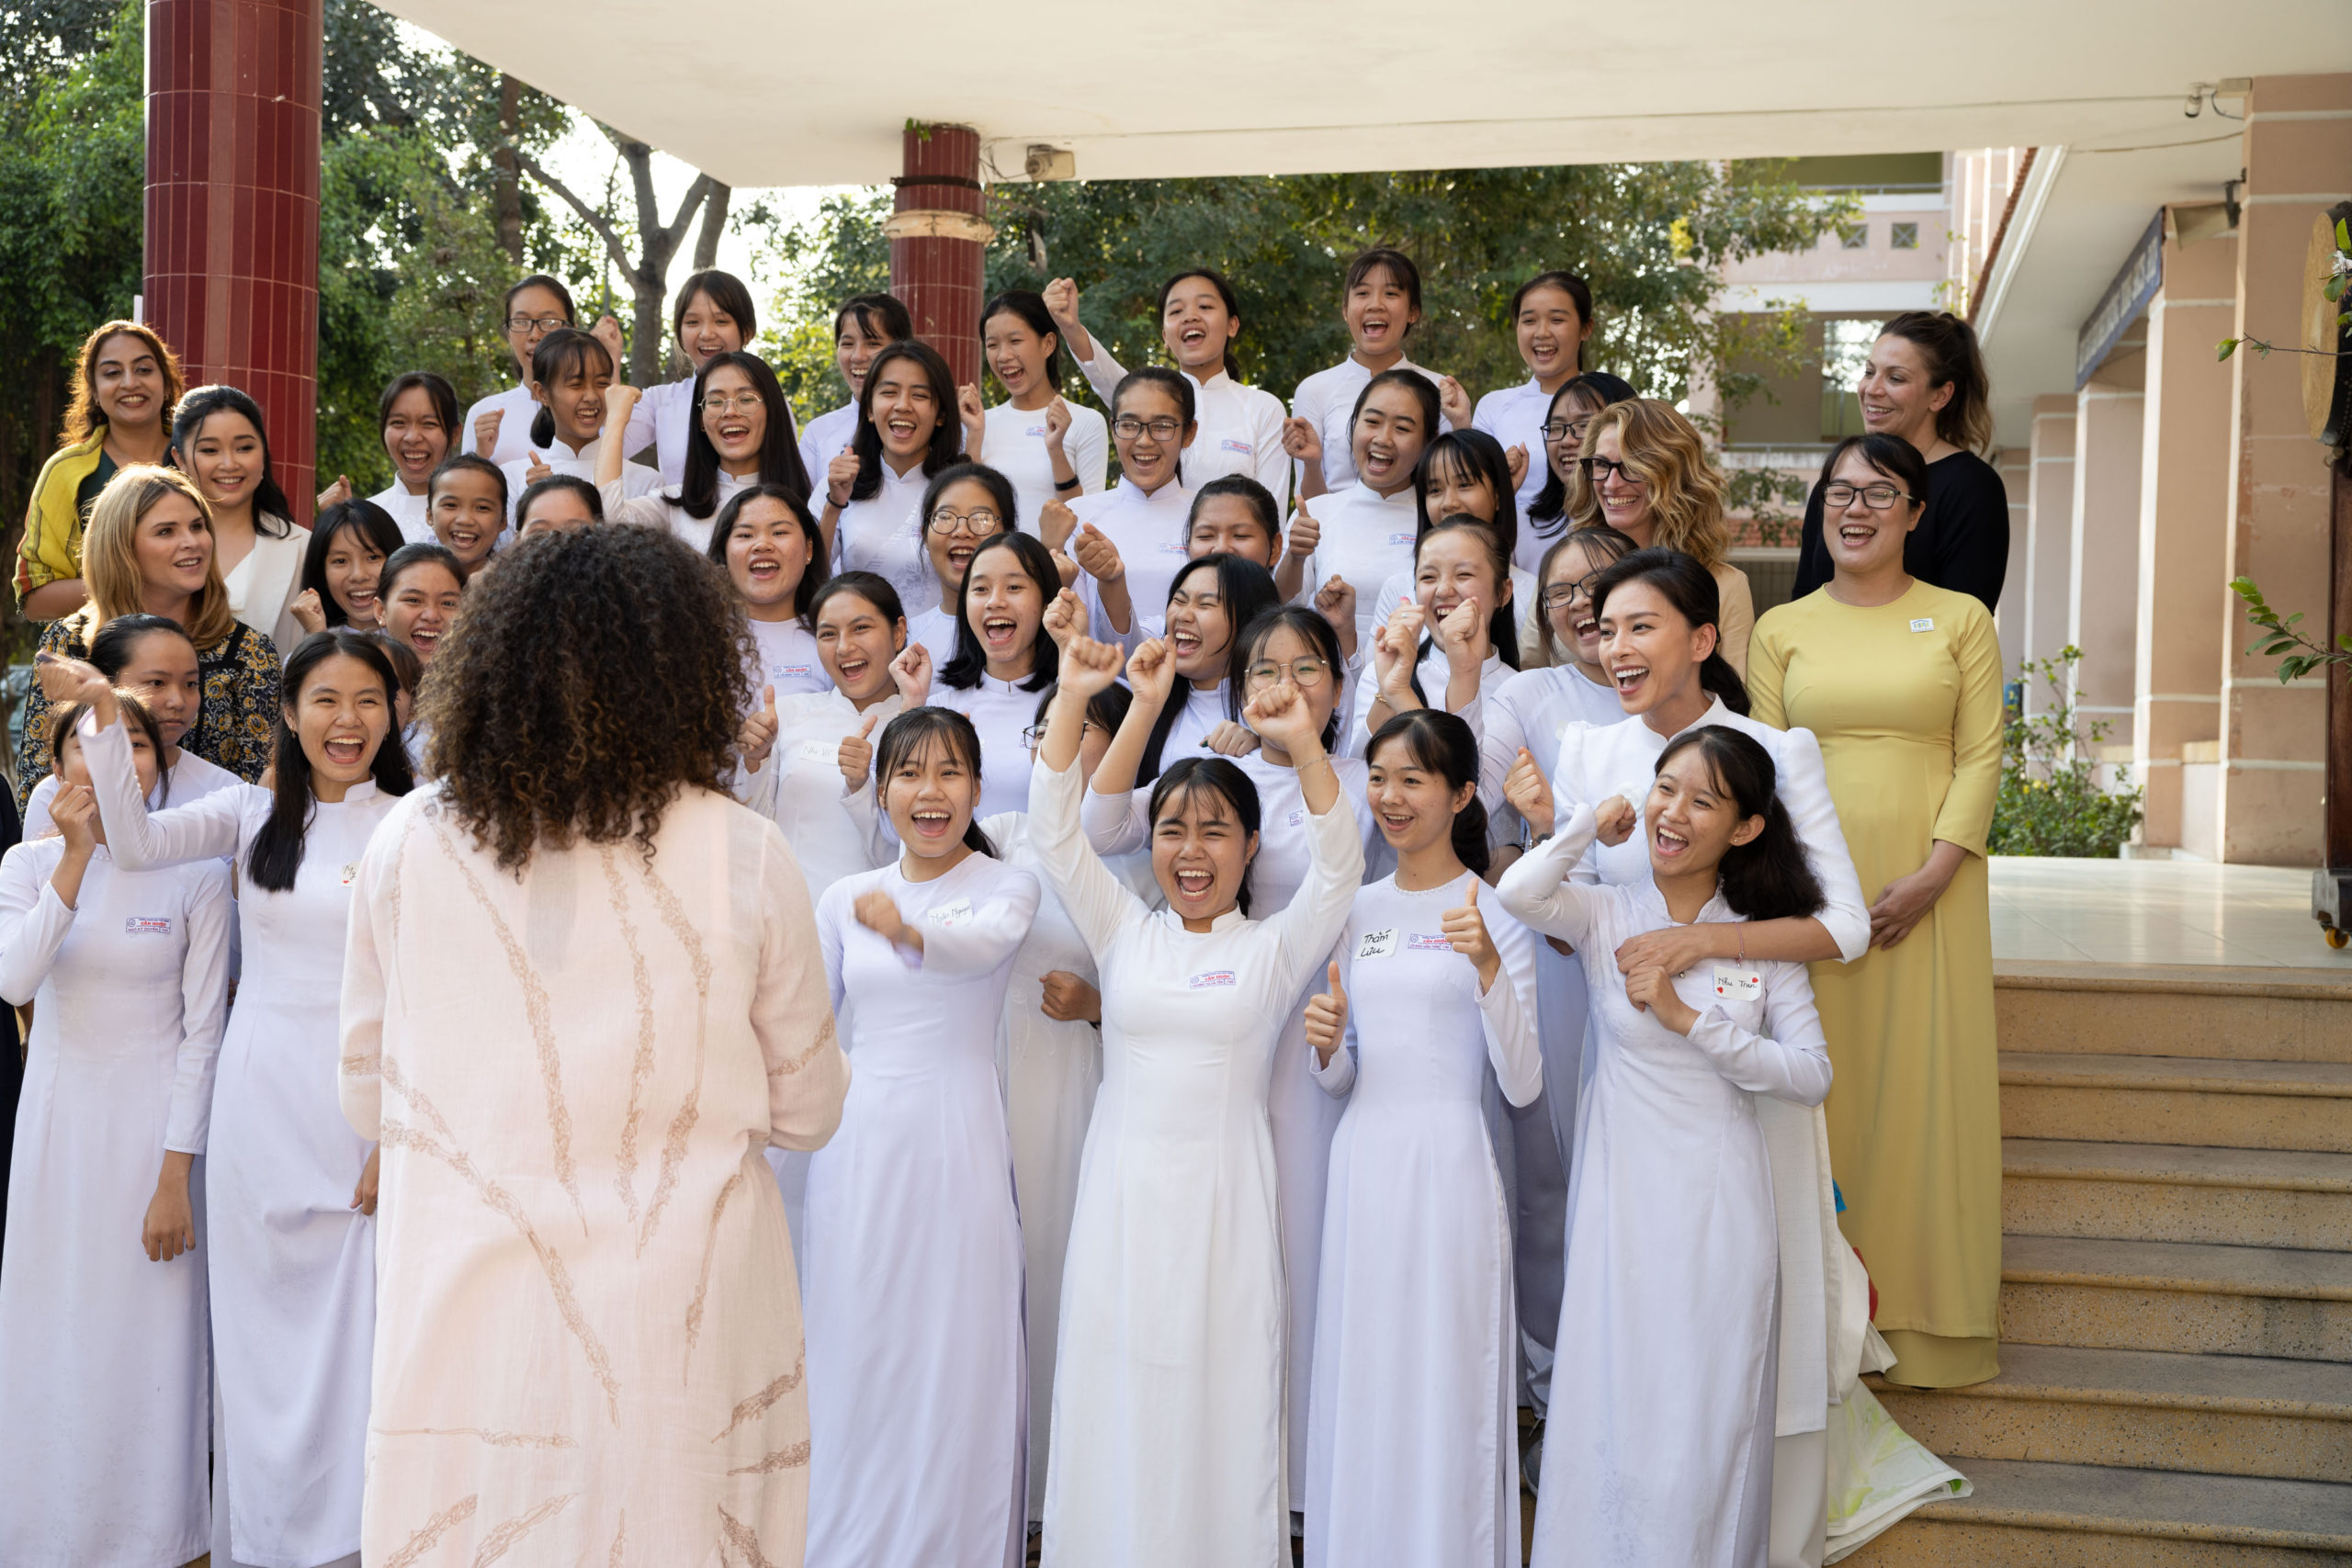 Mrs. Obama faces a group of excited young girls wearing white robes with their hands above their heads in joy.